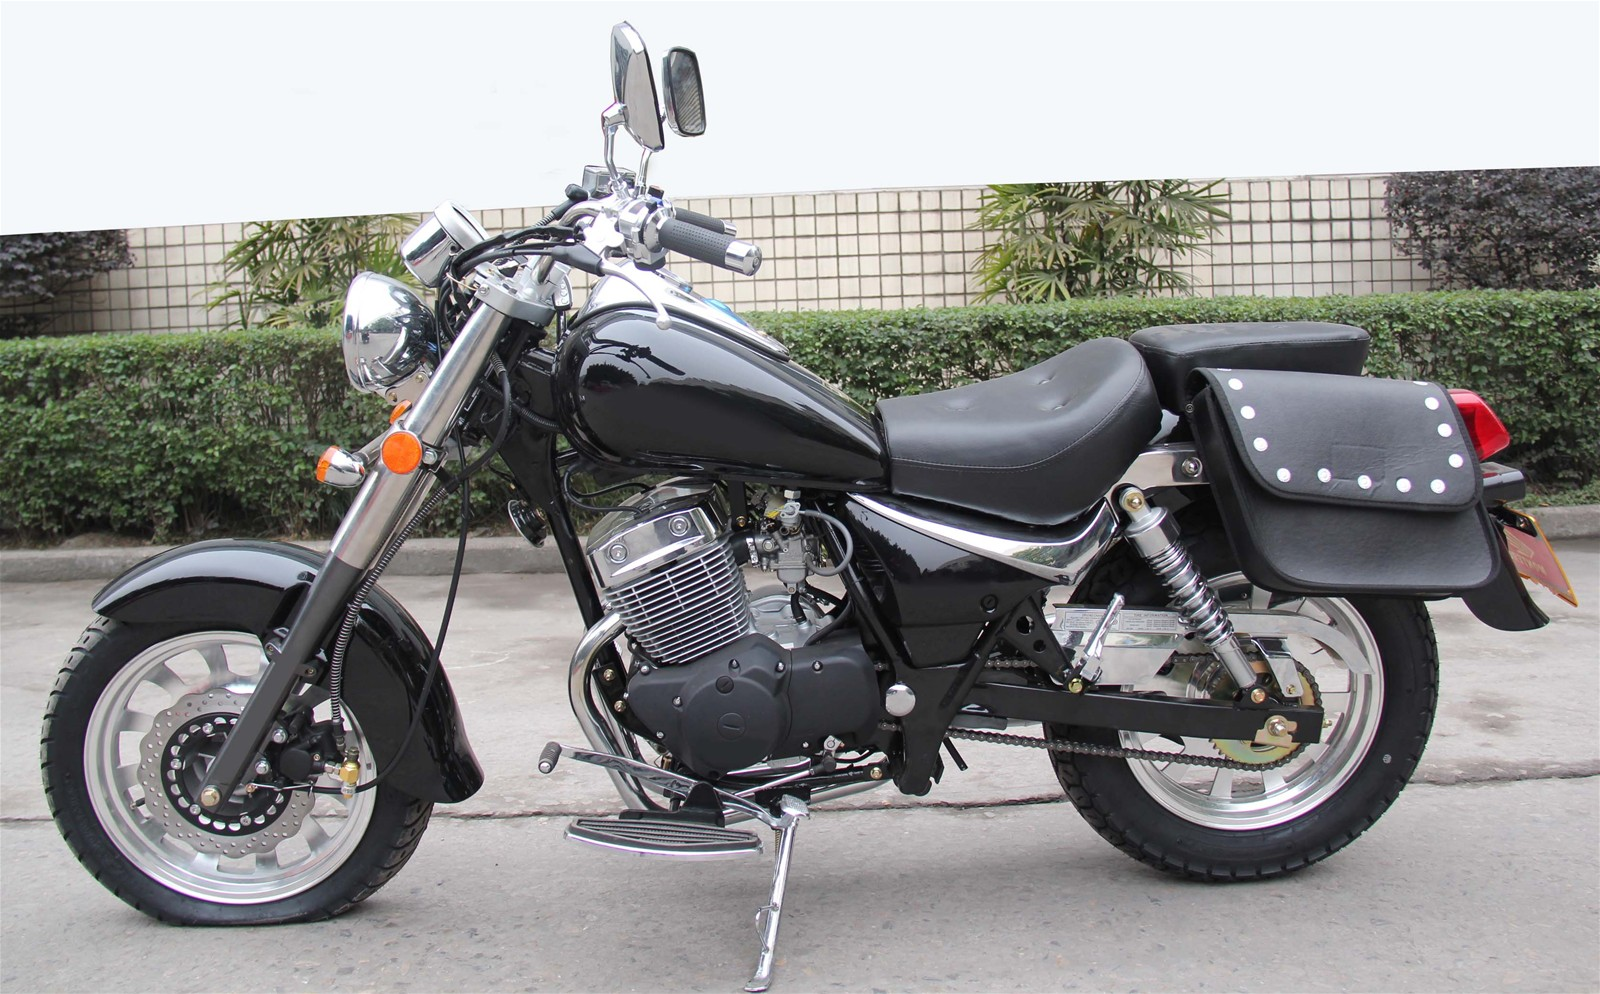 China Manufacturer with main products: Motorcycle, Dirt Bike, Motorbike, Electric Bike, Scooter, Tricycle, Three Wheel Motorcycle, 3 Wheel Motorcycle